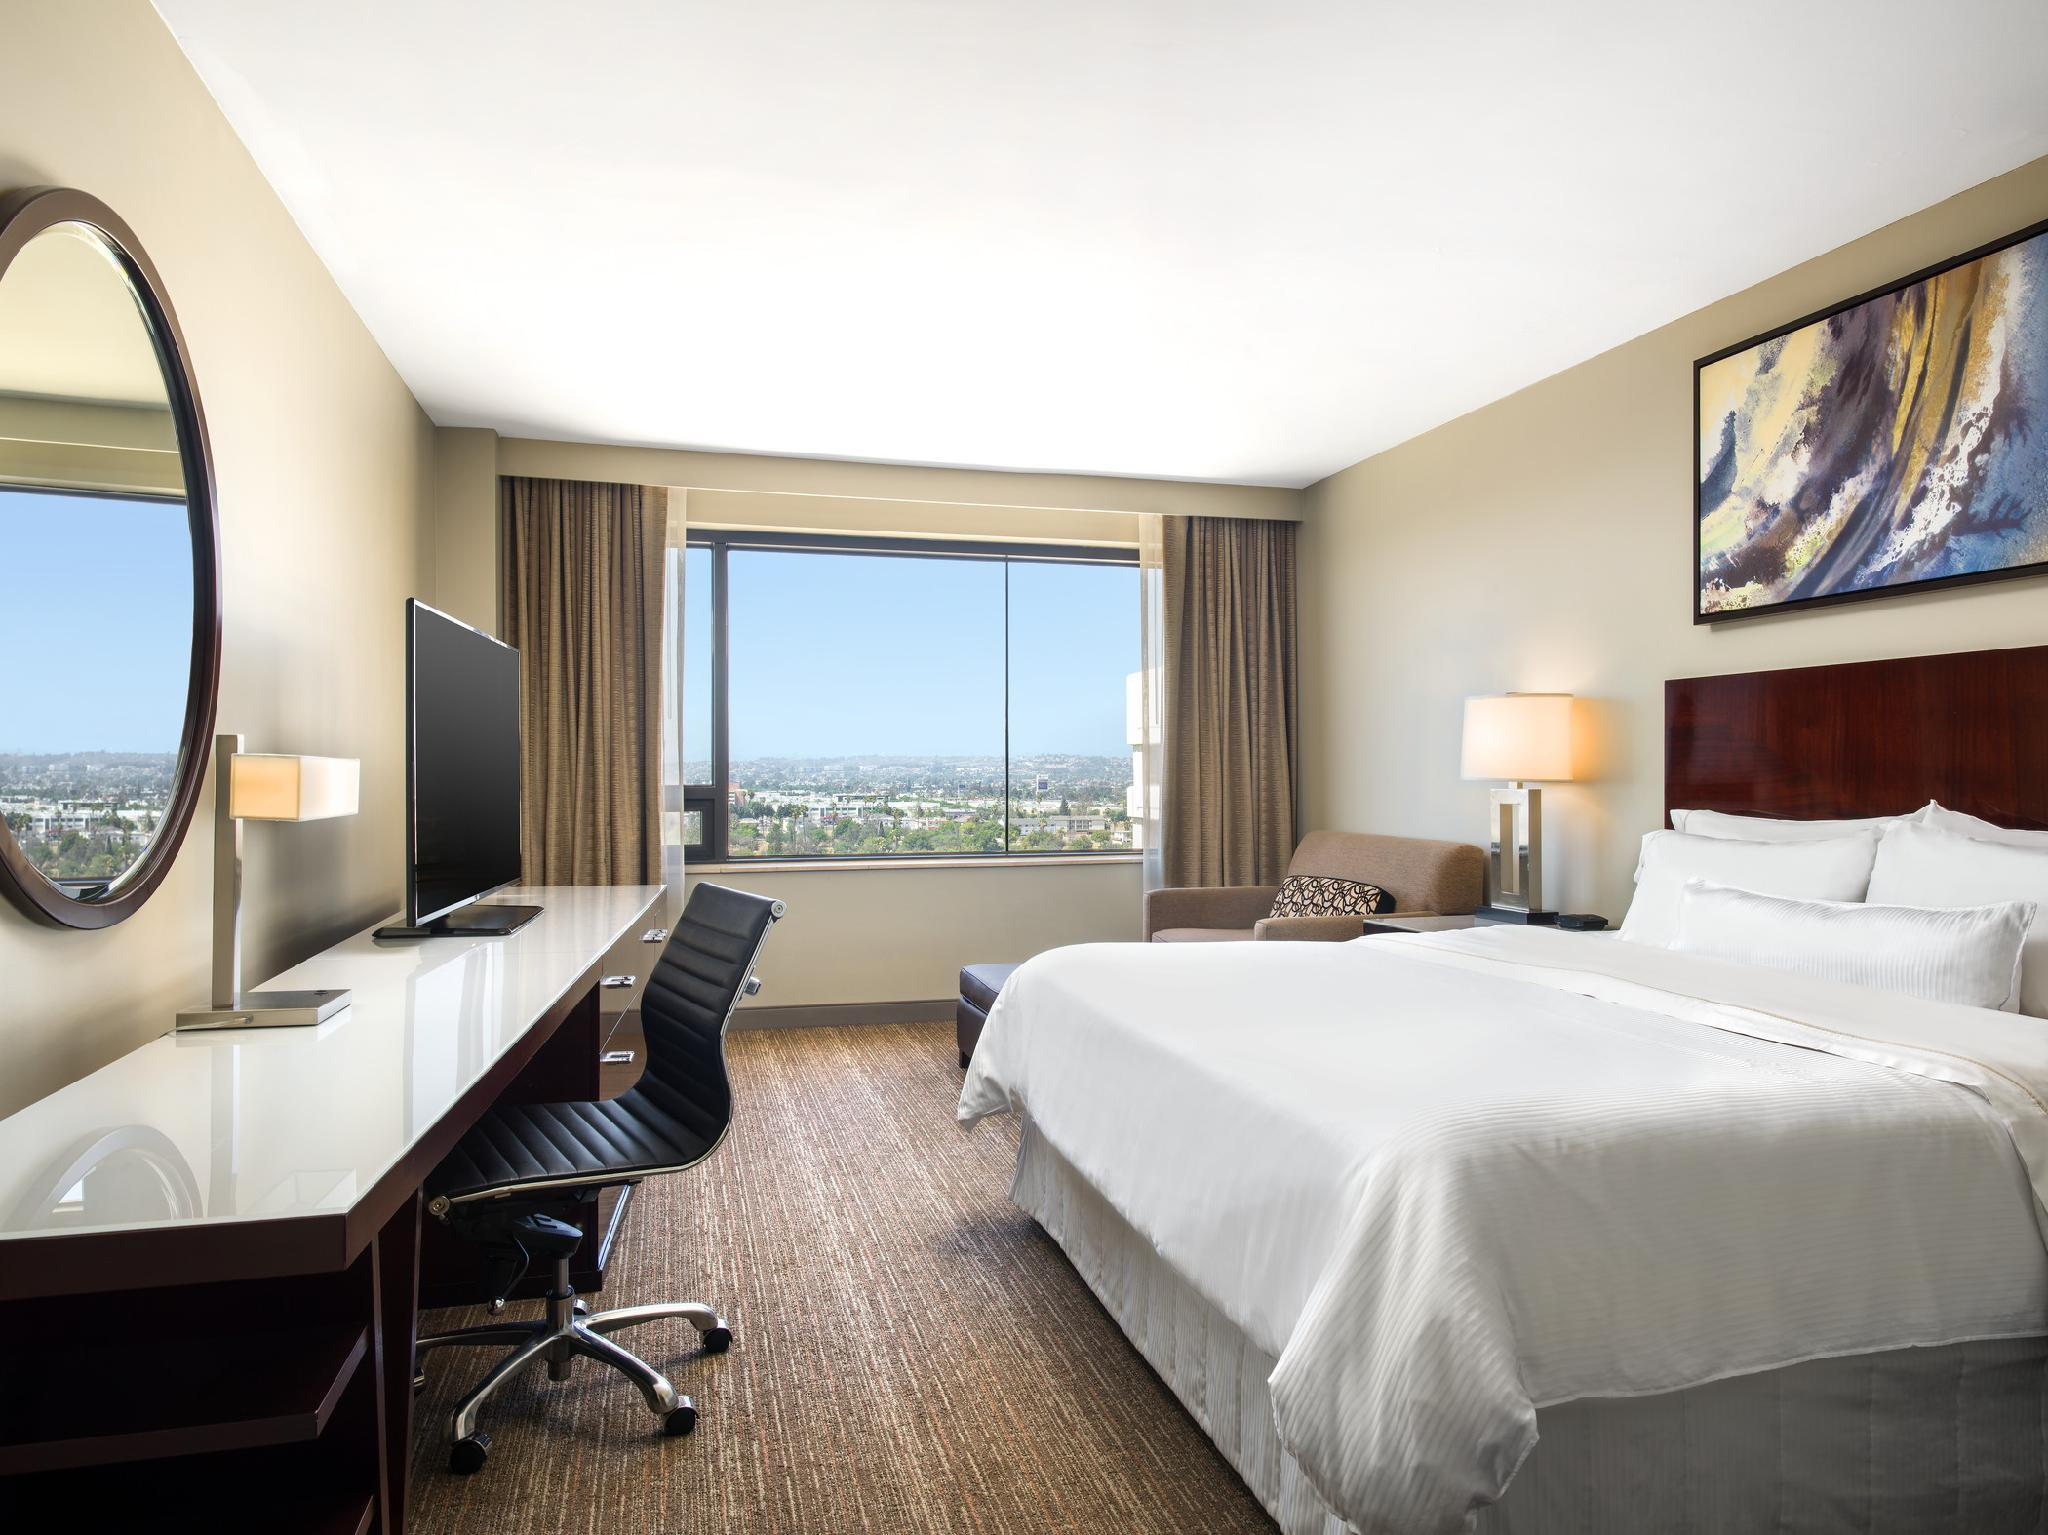 Executive, Executive lounge access, Guest room, 1 King